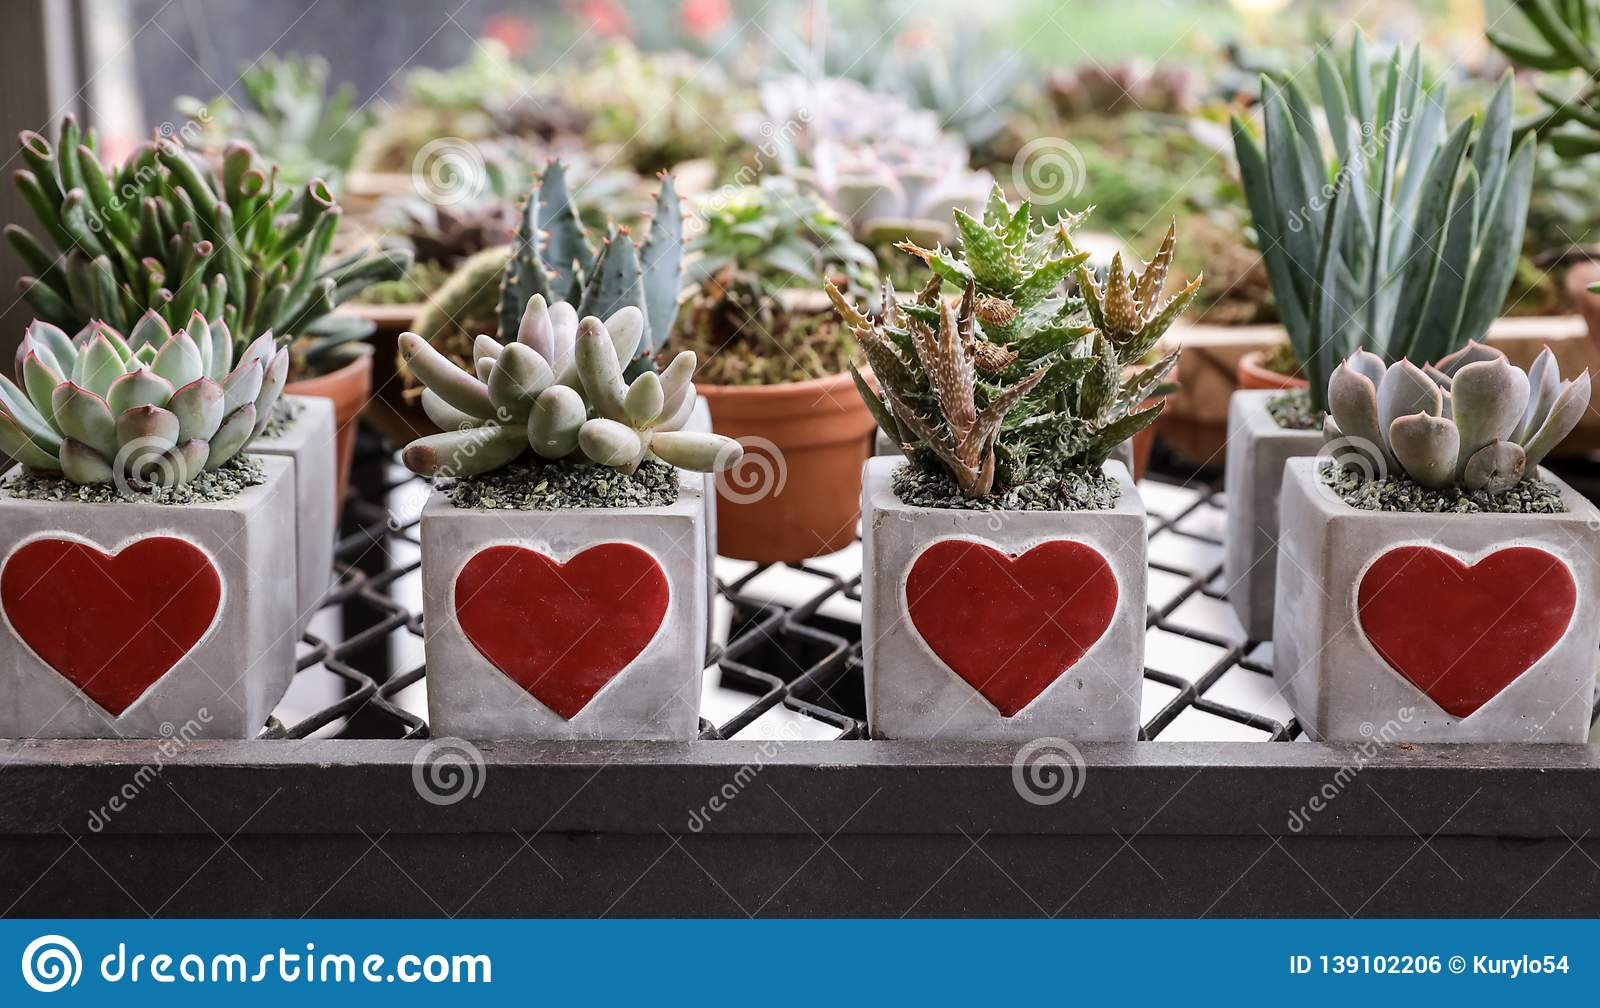 Succulents Plants Collection Prepared In Beautiful Pots For Valentines Day Gift Concept In The Flowers Bar Stock Photo Image Of Growth Echeveria 139102206